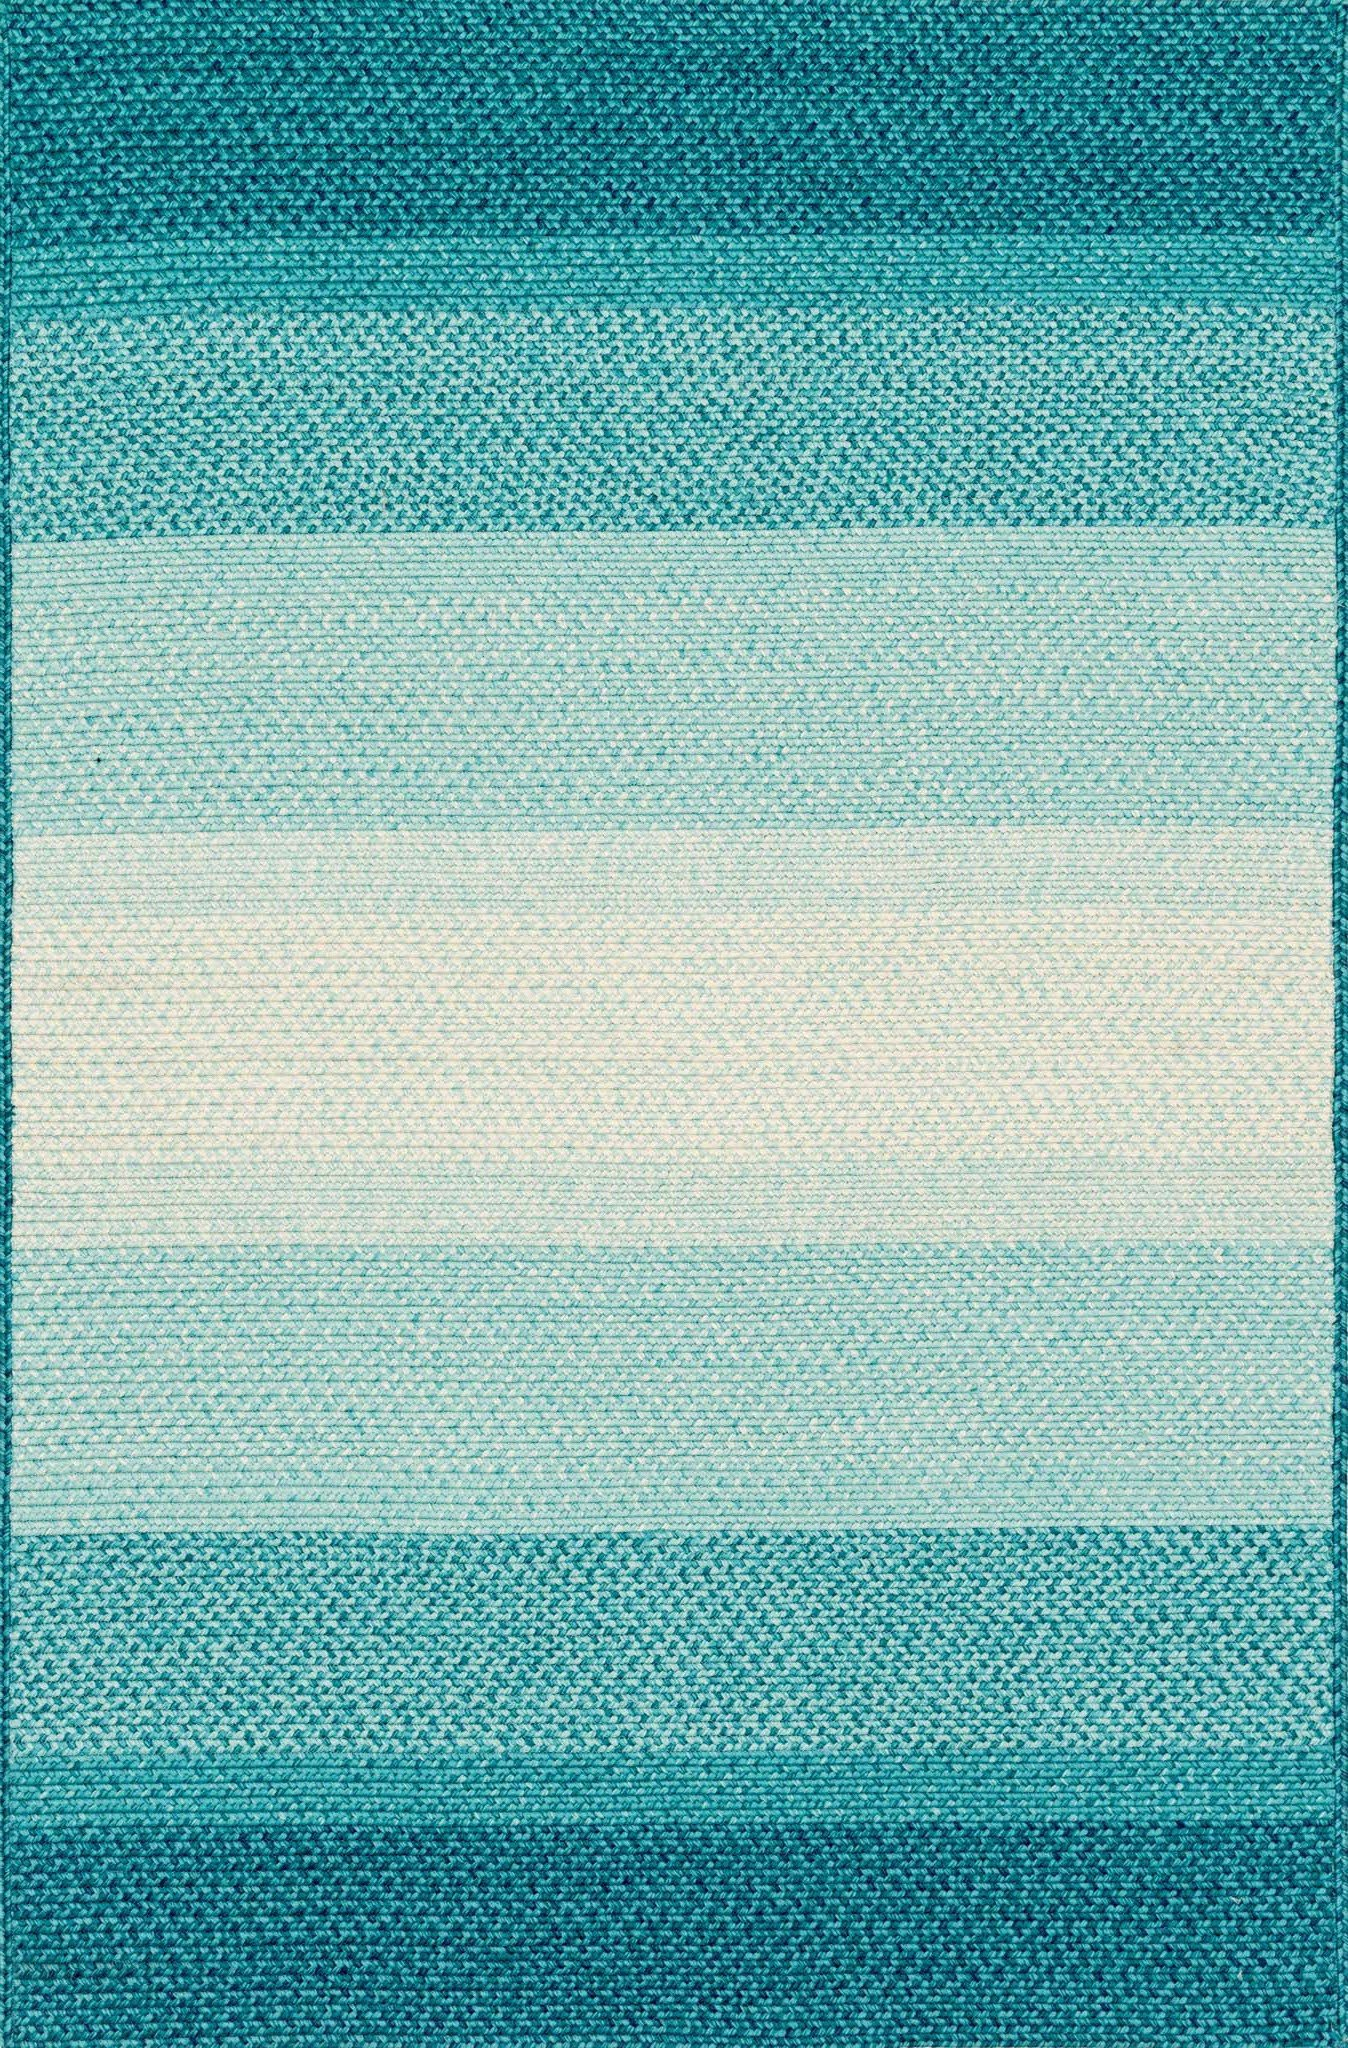 Loloi Rugs Garrett Collection Area Rug, Blue, 7'9'' by 9'9''